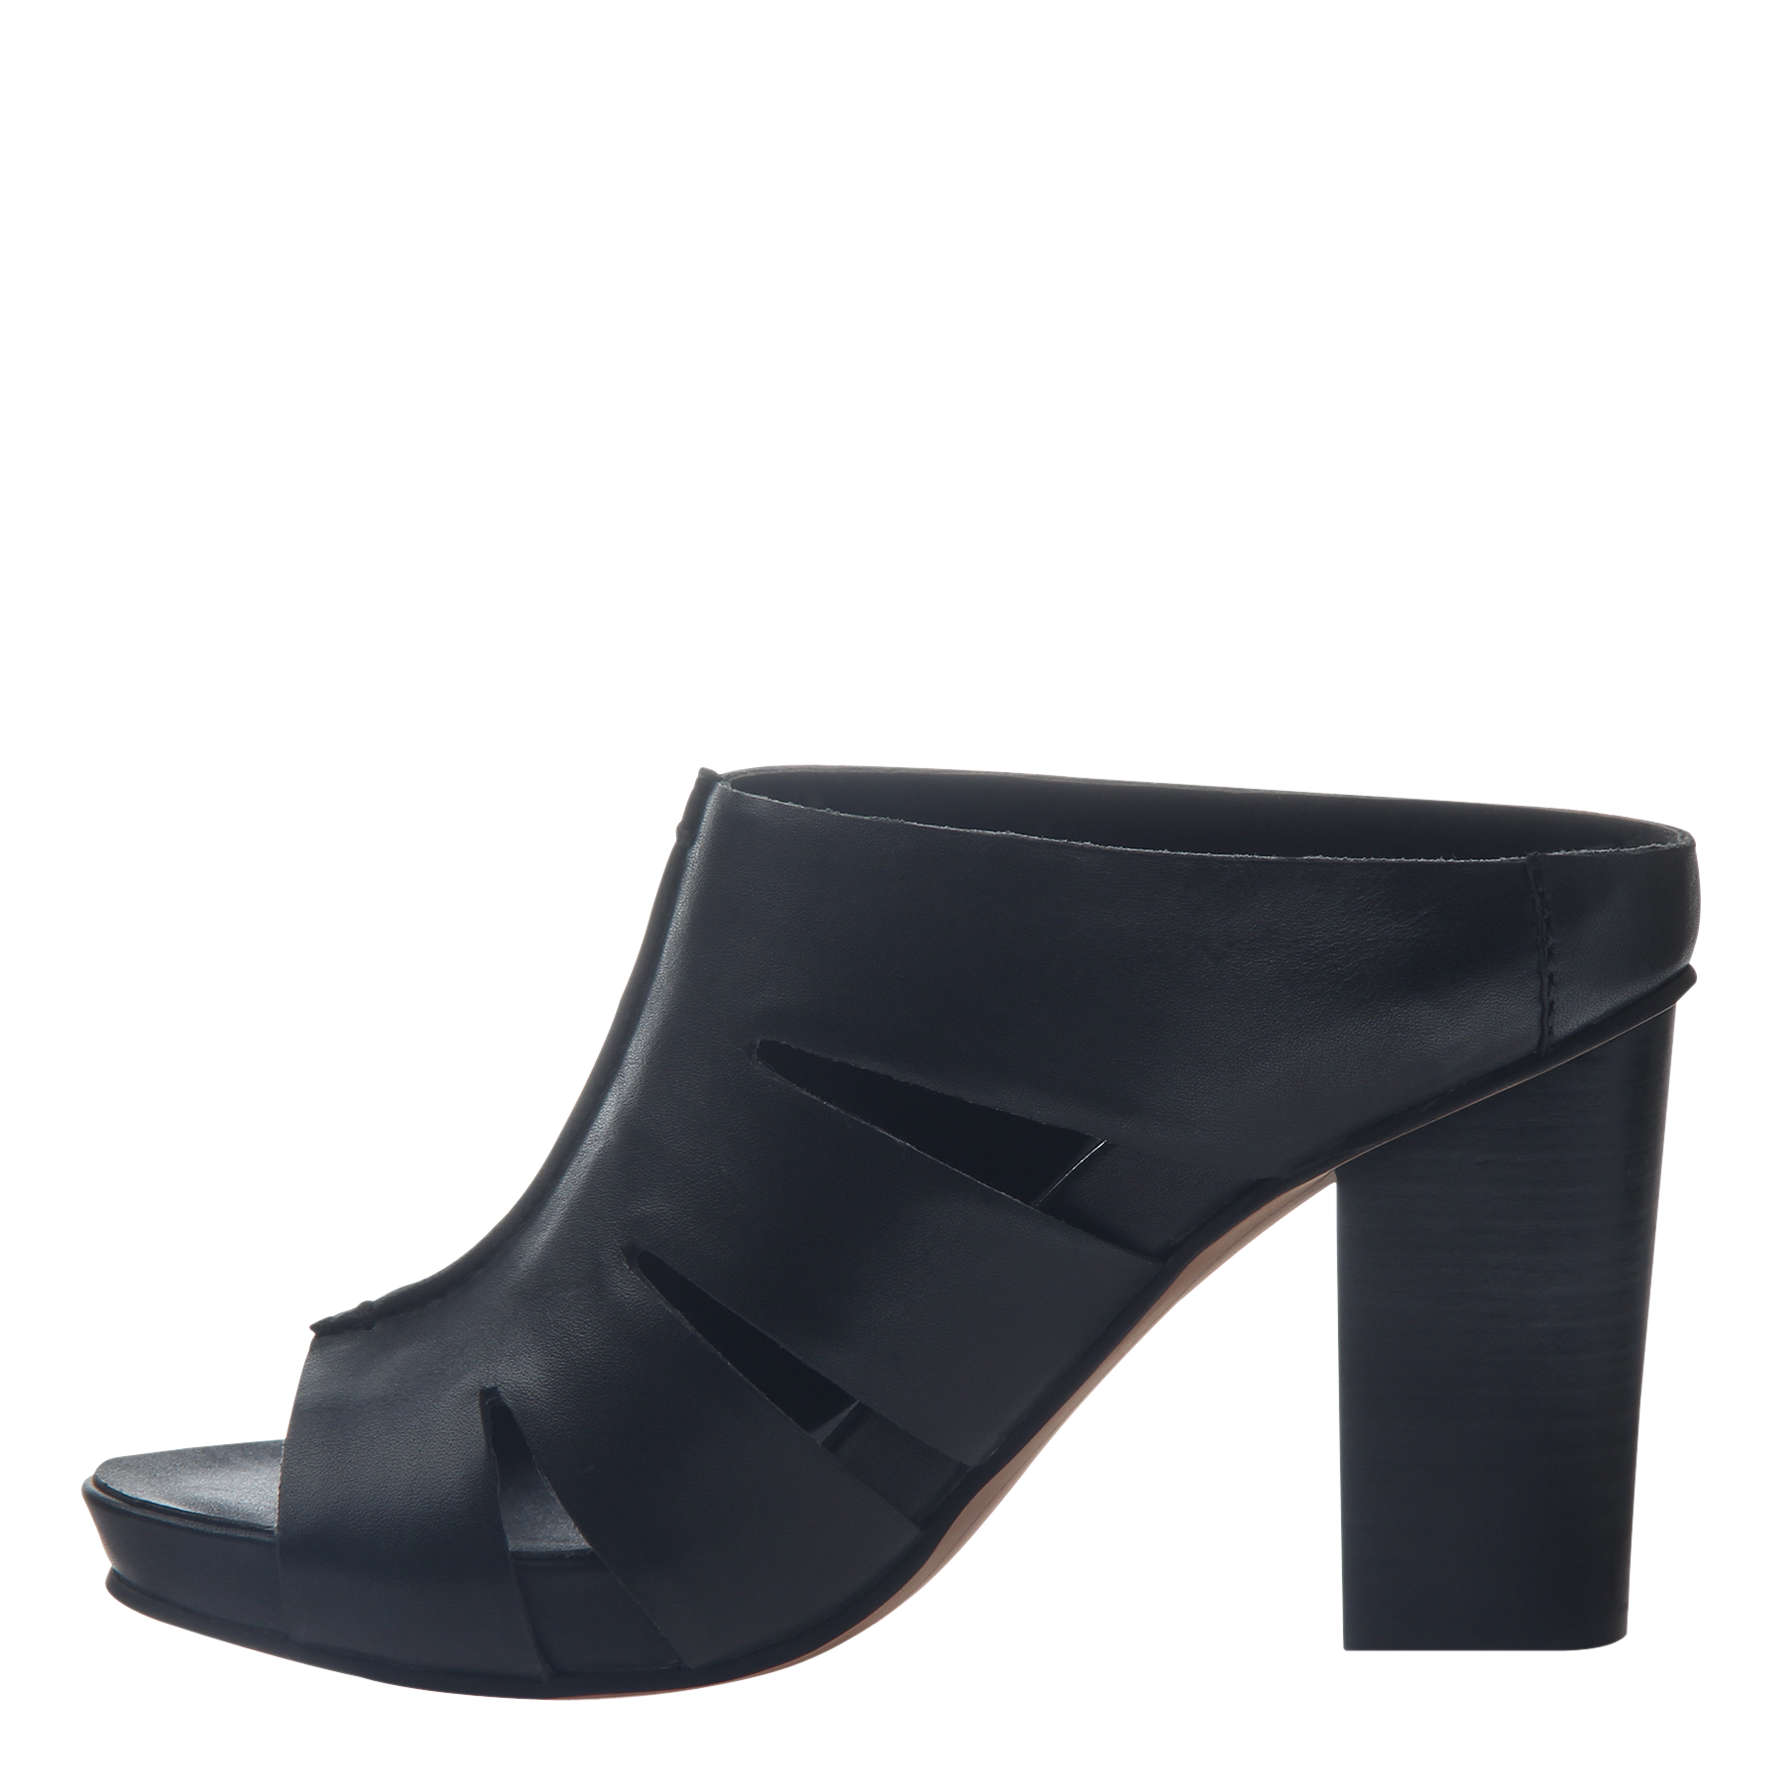 Nicole womens heeled sandal Delphine in black inside view